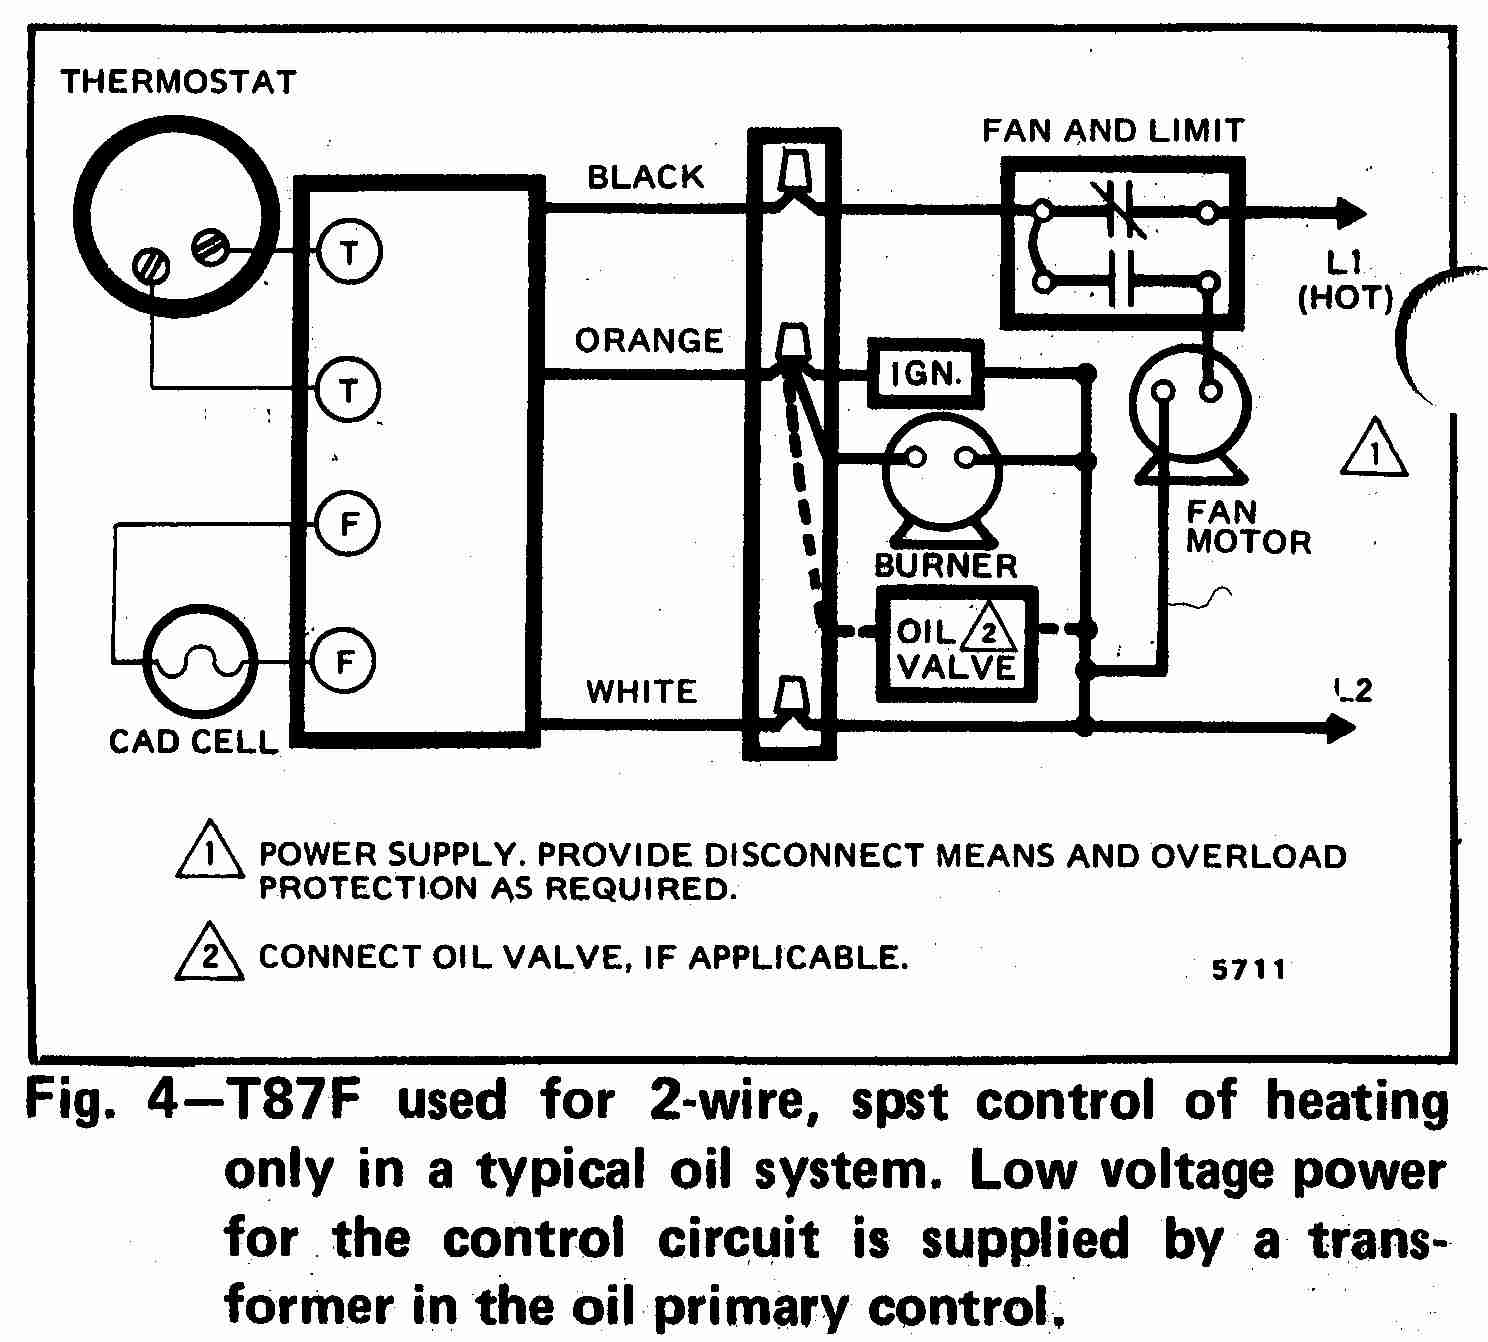 Honeywell heating wiring diagram wiring diagram database room thermostat wiring diagrams for hvac systems rh inspectapedia com honeywell underfloor heating wiring diagram honeywell heat pump wiring diagram asfbconference2016 Images